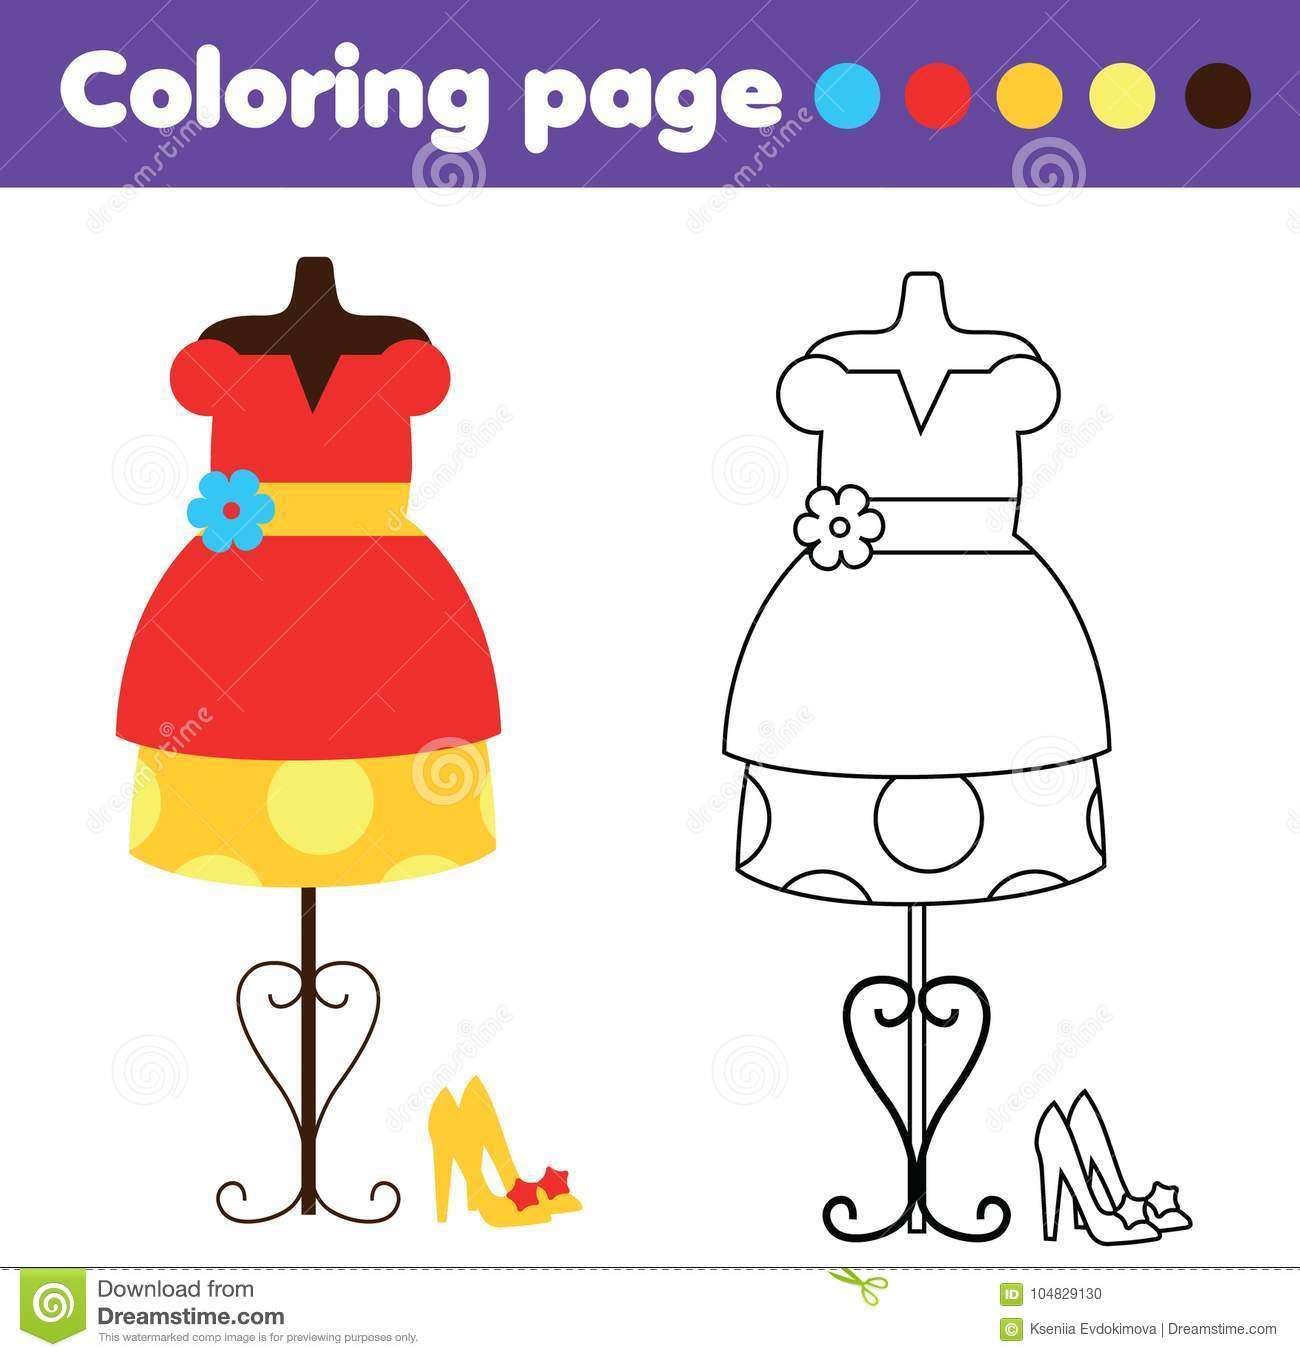 Coloring Page With Fashion Dress And Shoes Drawing Kids Game Printable Activity Stock Vector Illustration Of Coloring Children 104829130